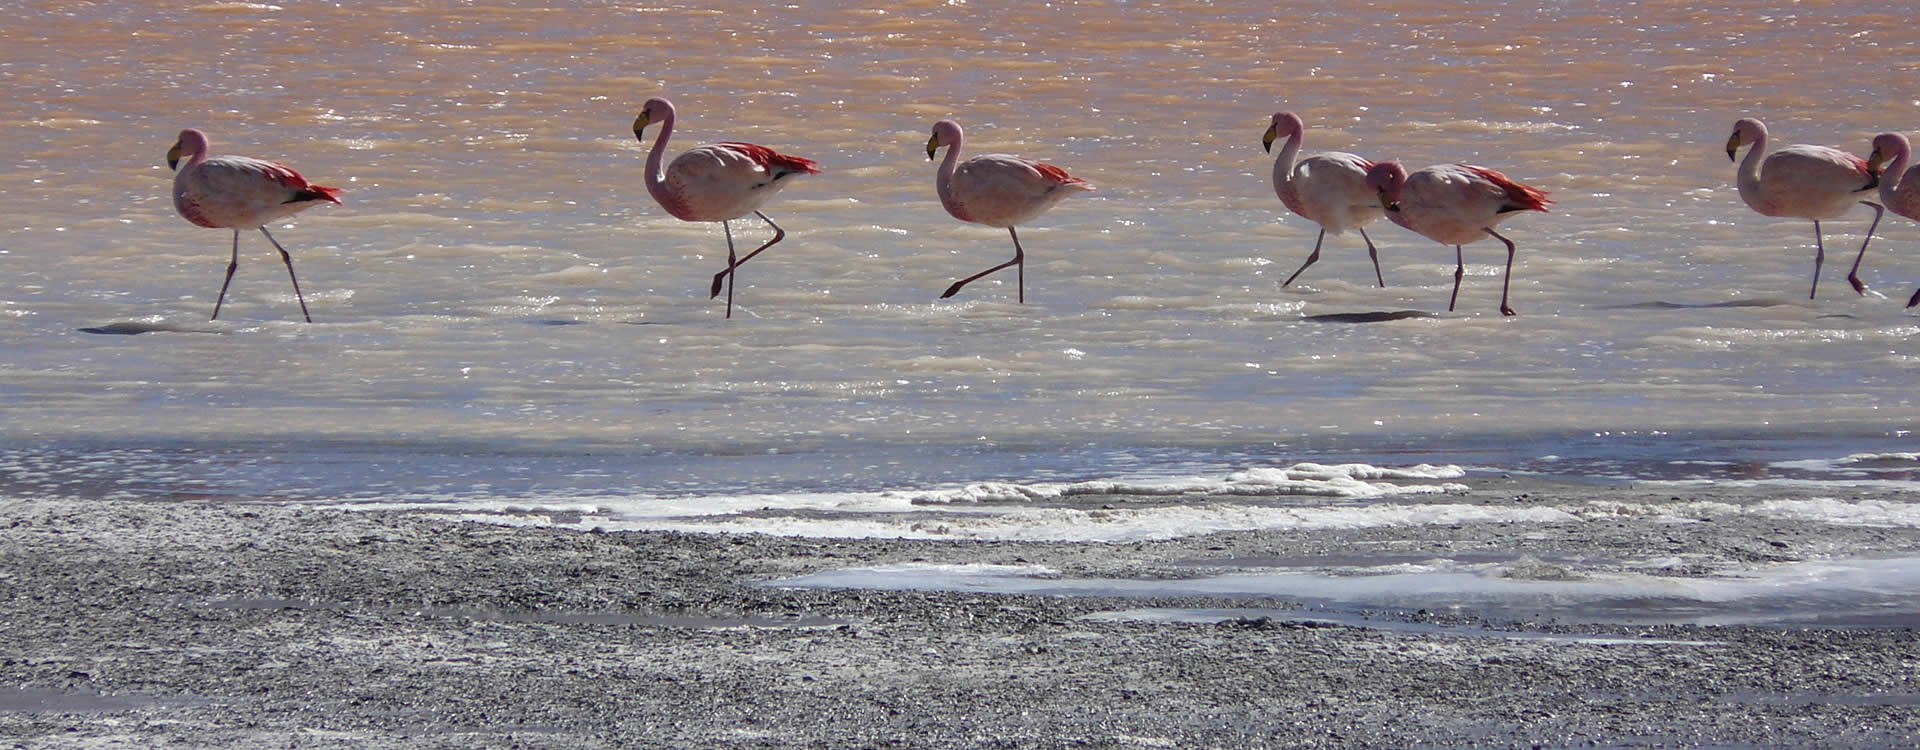 Flamingos in Uyuni